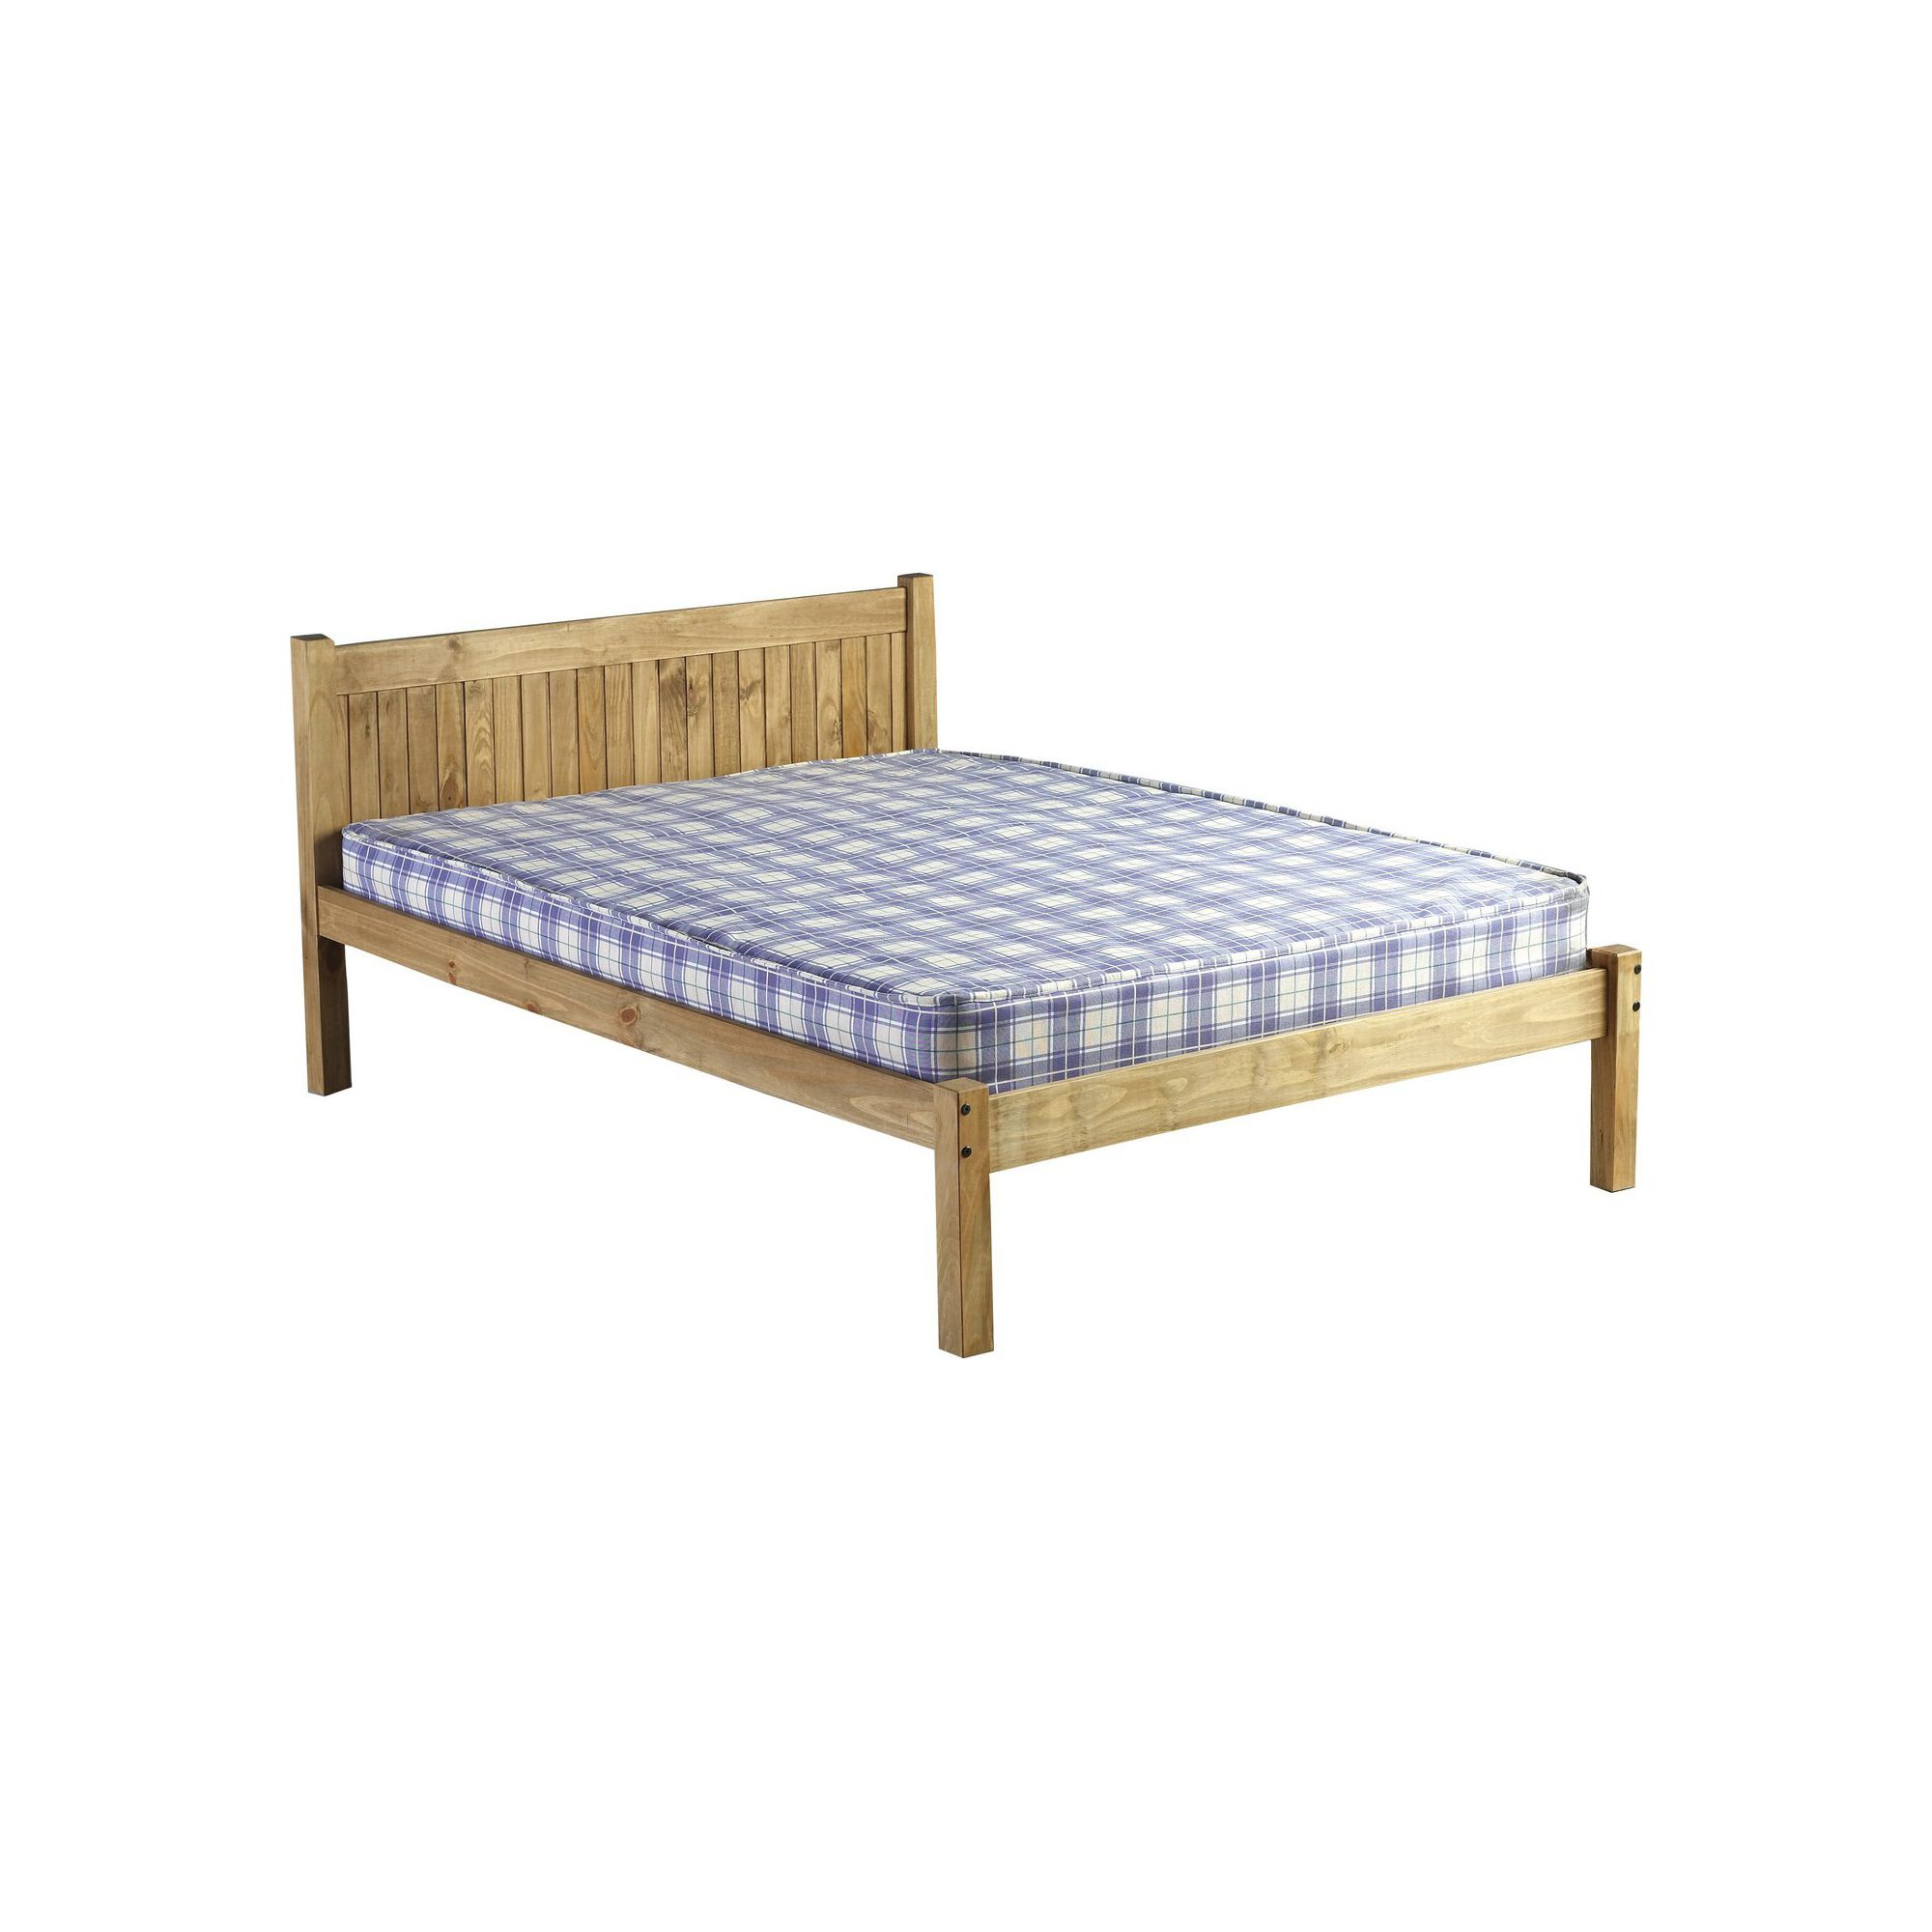 Home And Garden Furniture Home Essence Colorado Low Foot End Bed Frame Double 4 39 6